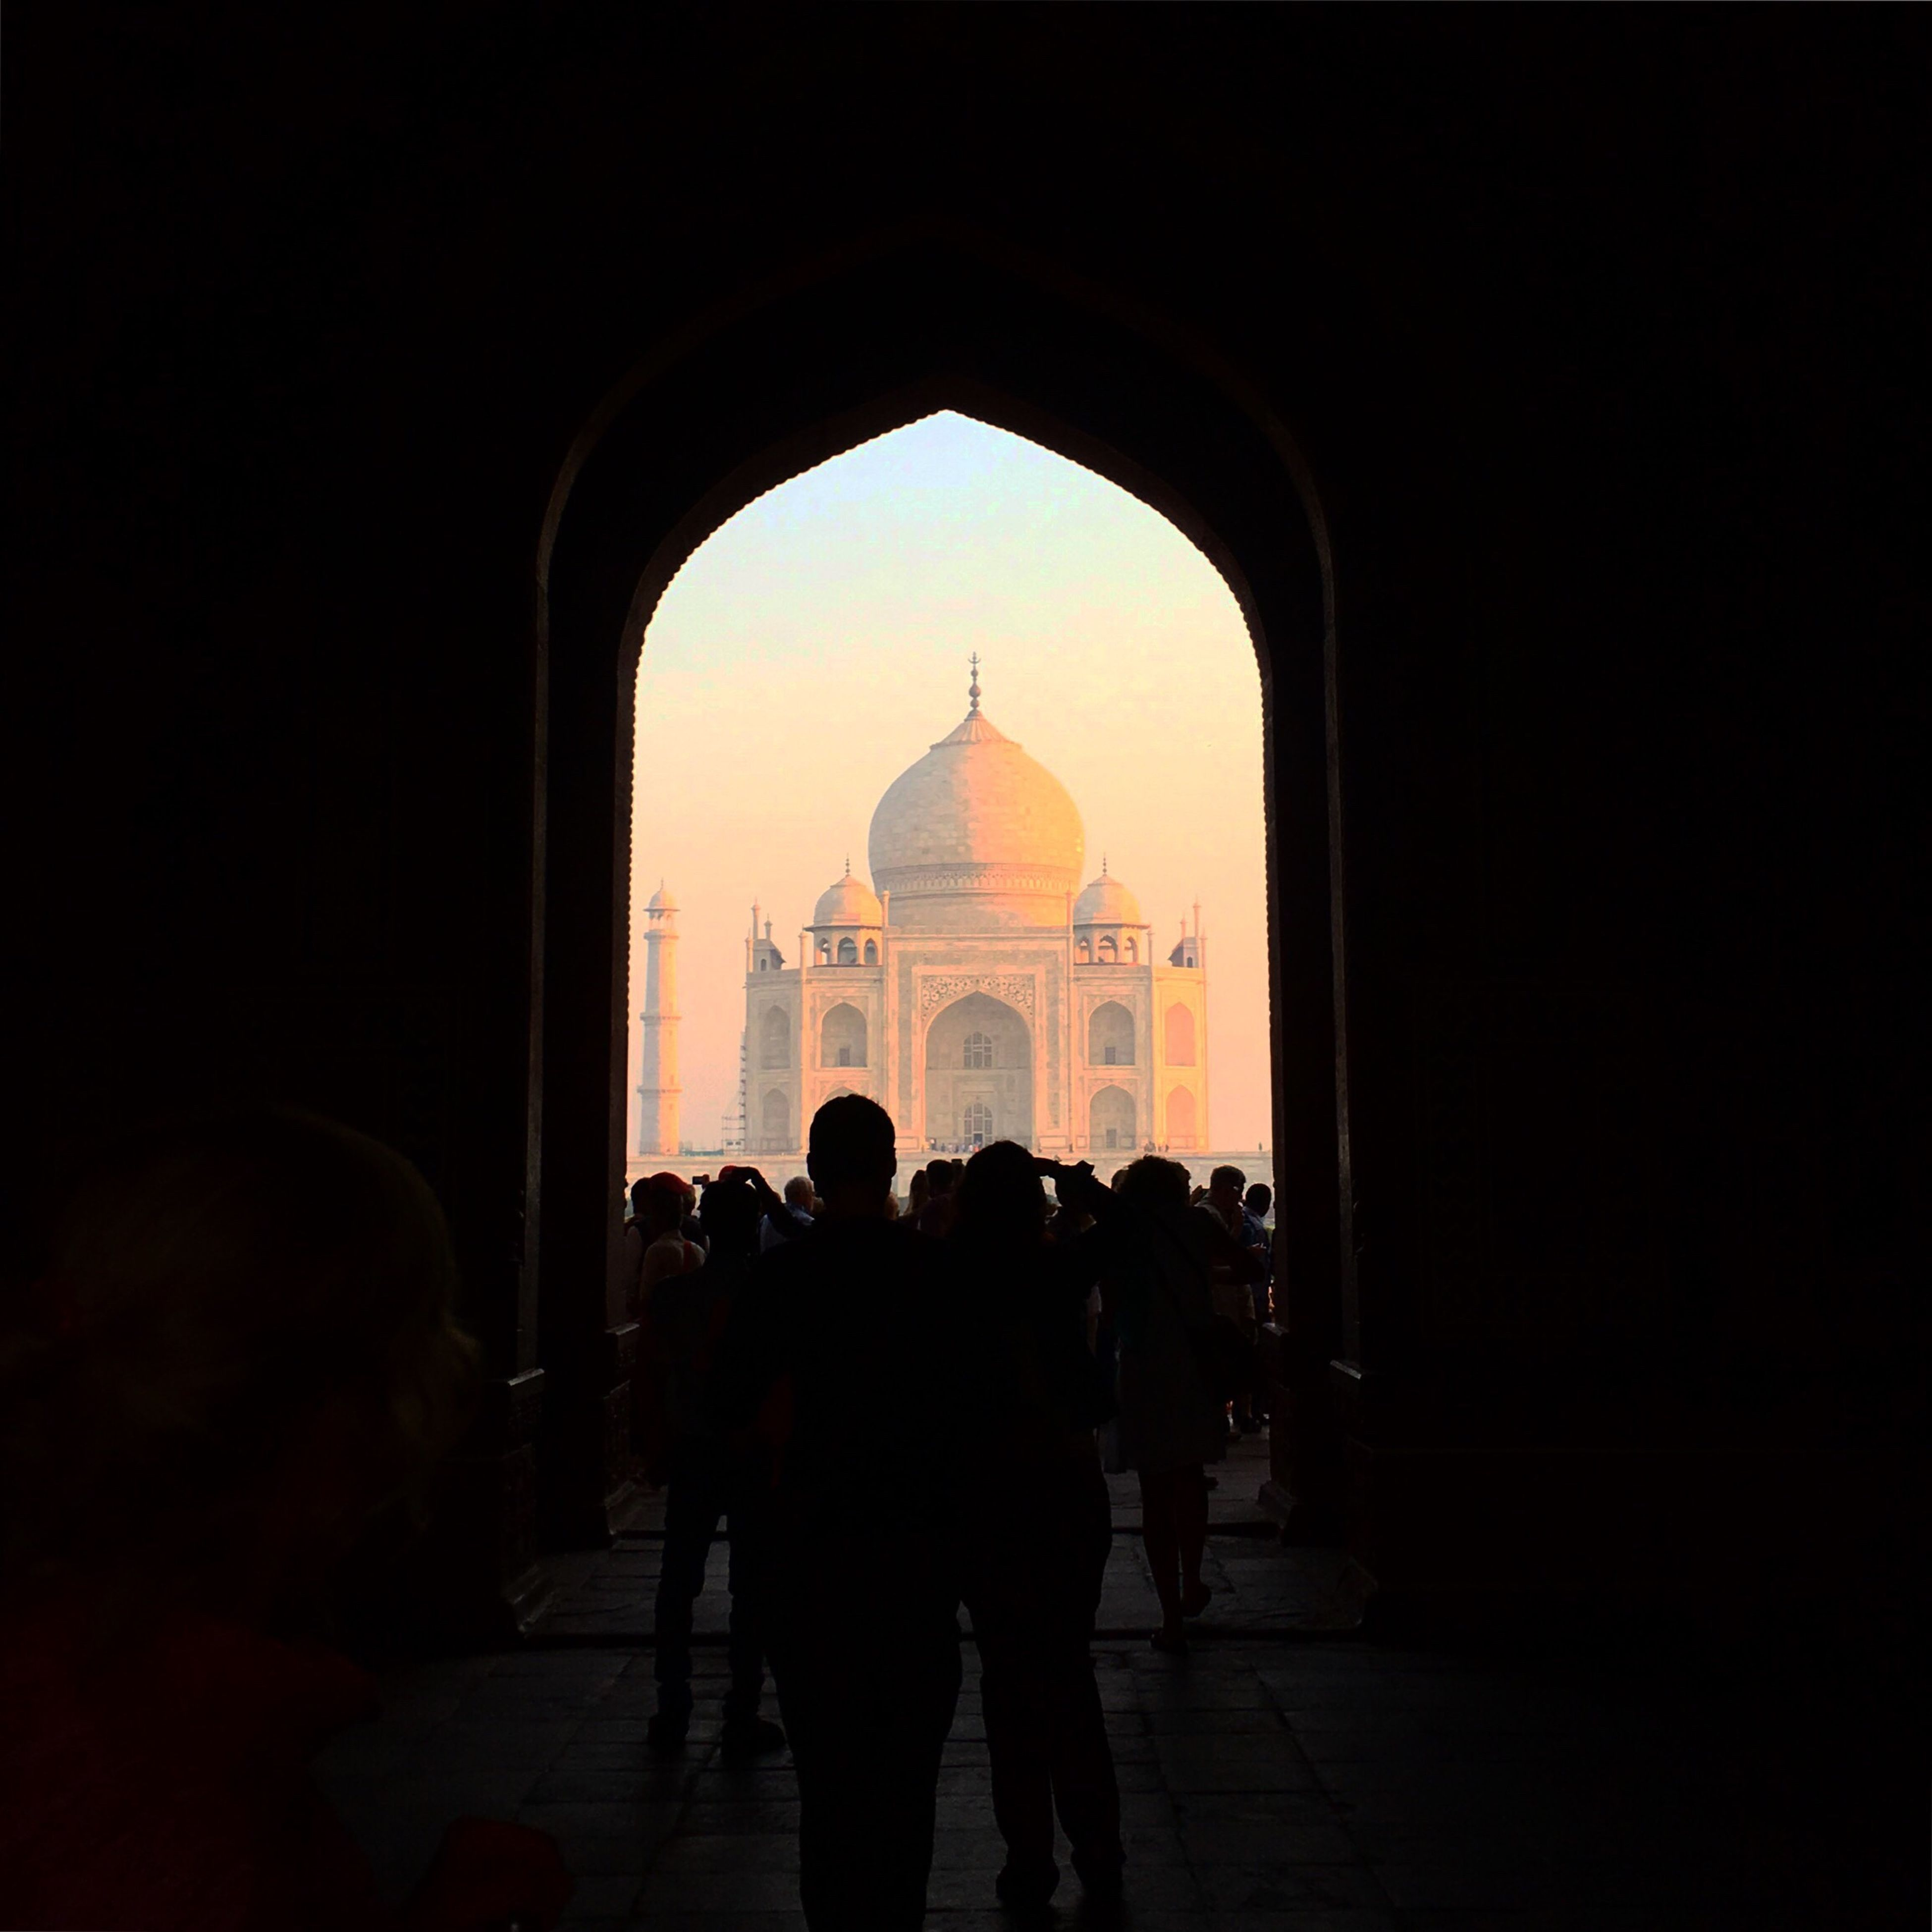 arch, real people, architecture, silhouette, travel destinations, leisure activity, lifestyles, archway, built structure, tourism, cultures, dome, indoors, history, large group of people, men, day